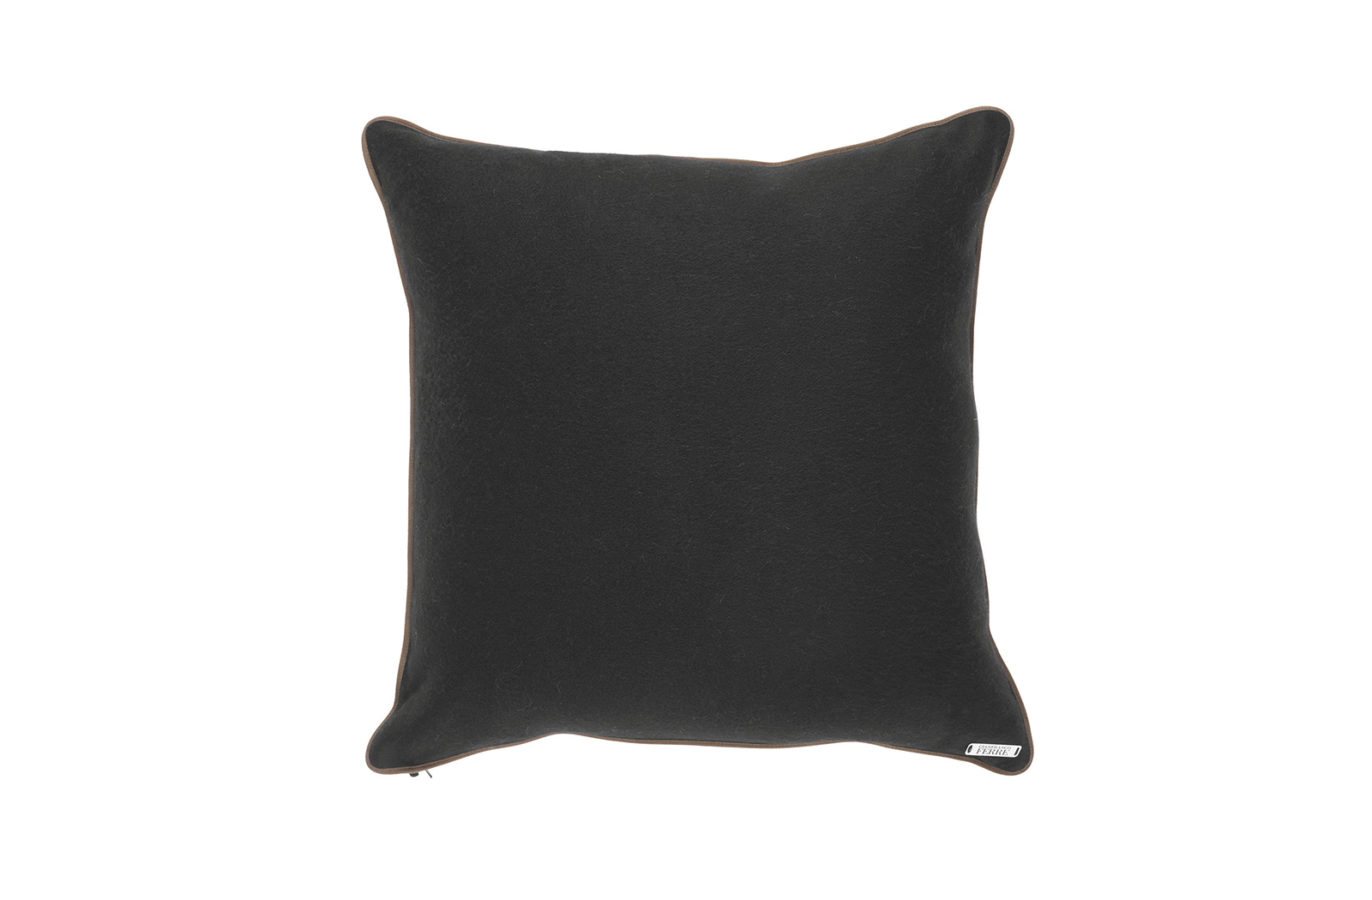 Gianfranco Ferre Home Tessa Cushion 02